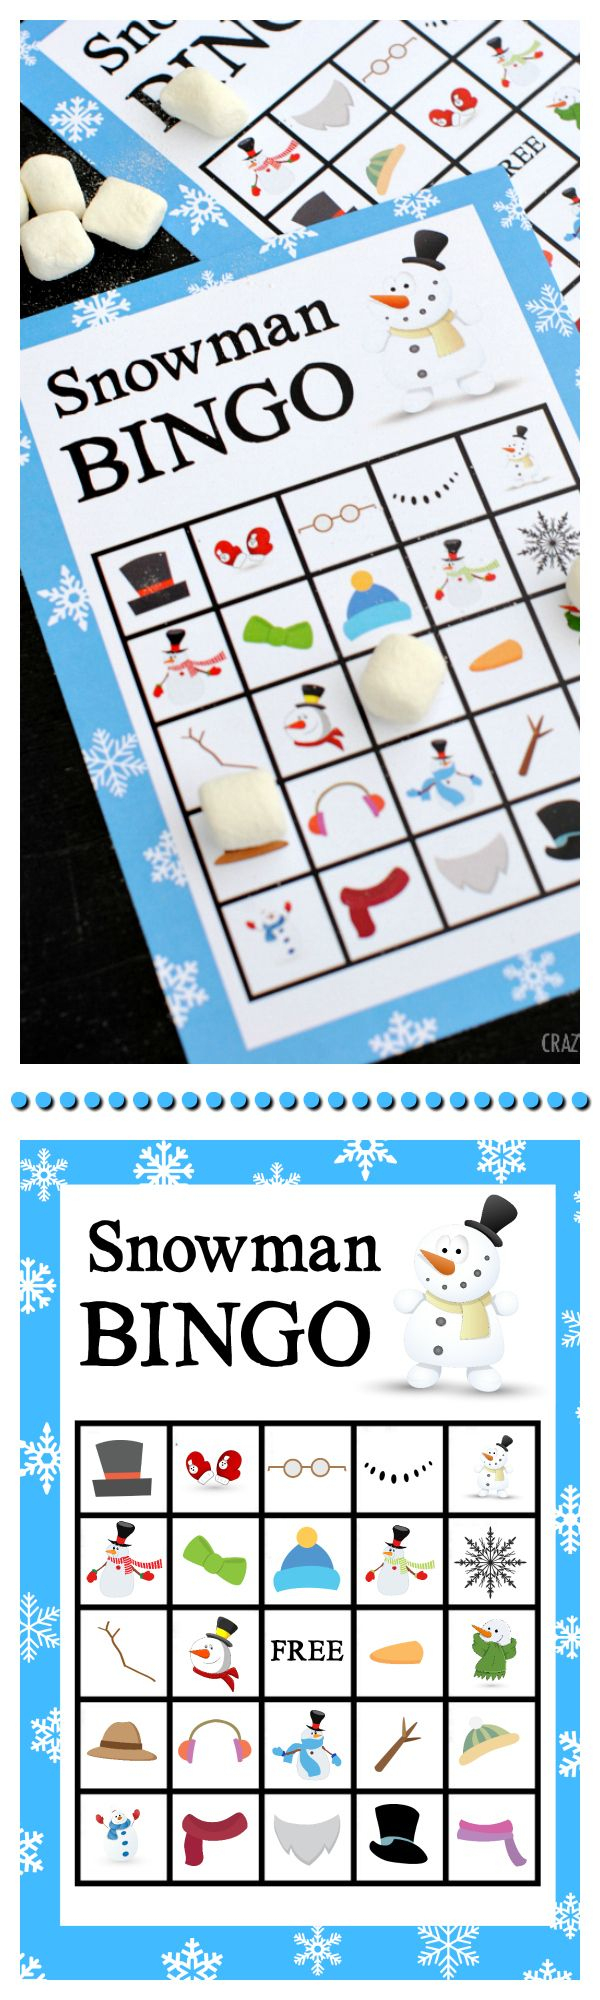 Printable Snowman Bingo Game | Snowman Party, Christmas